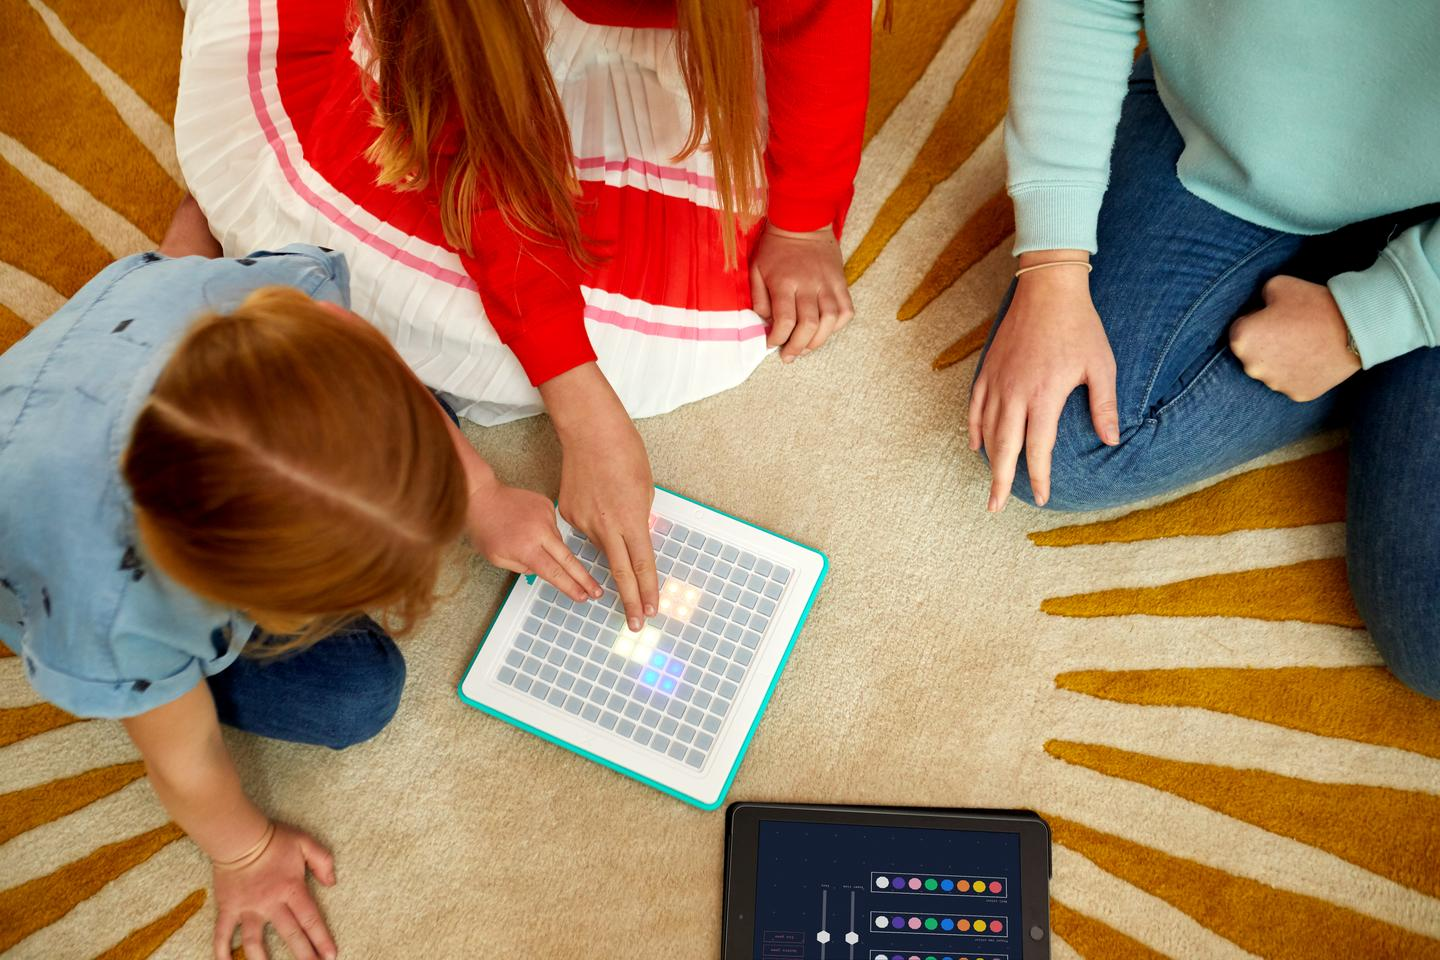 The Arcade Coder is made up of a tactile, programmable game console and an iOS app